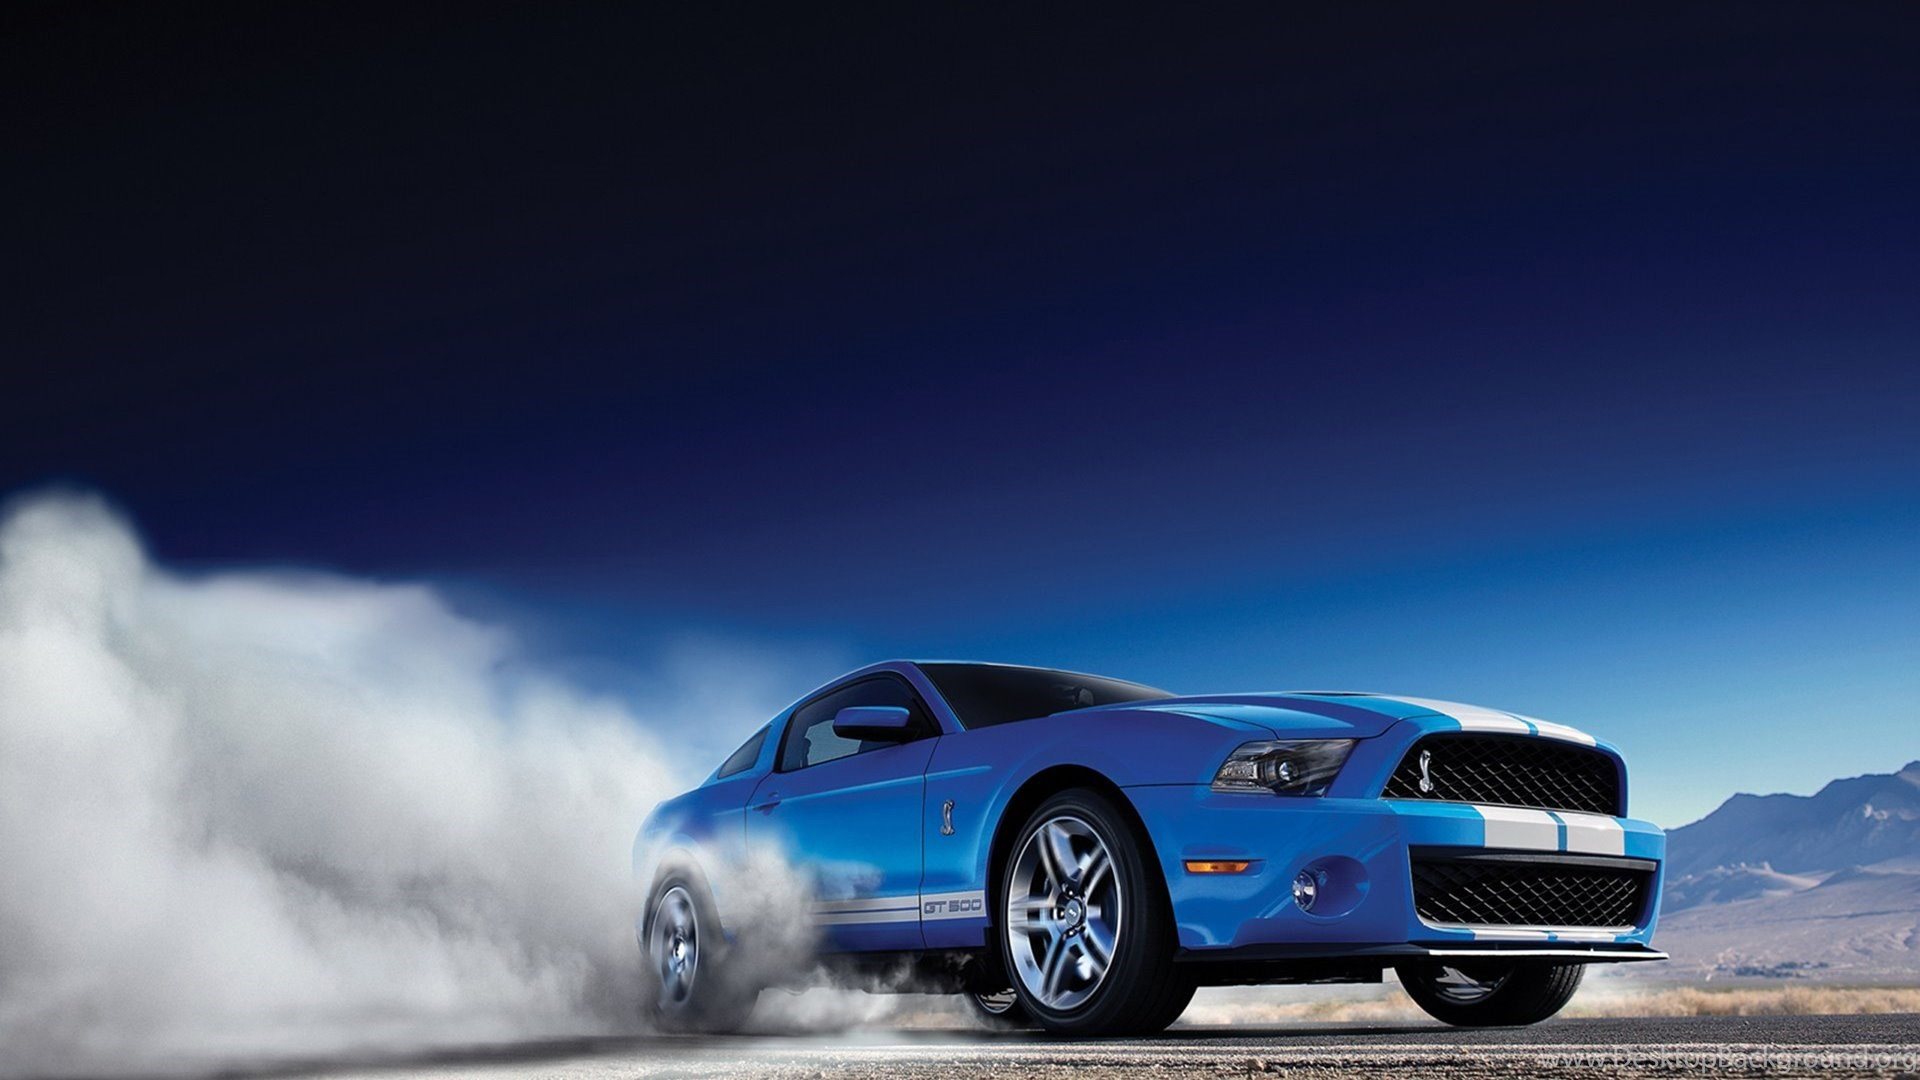 Ford mustang shelby gt500 wallpapers image desktop background - Ford mustang wallpaper download ...